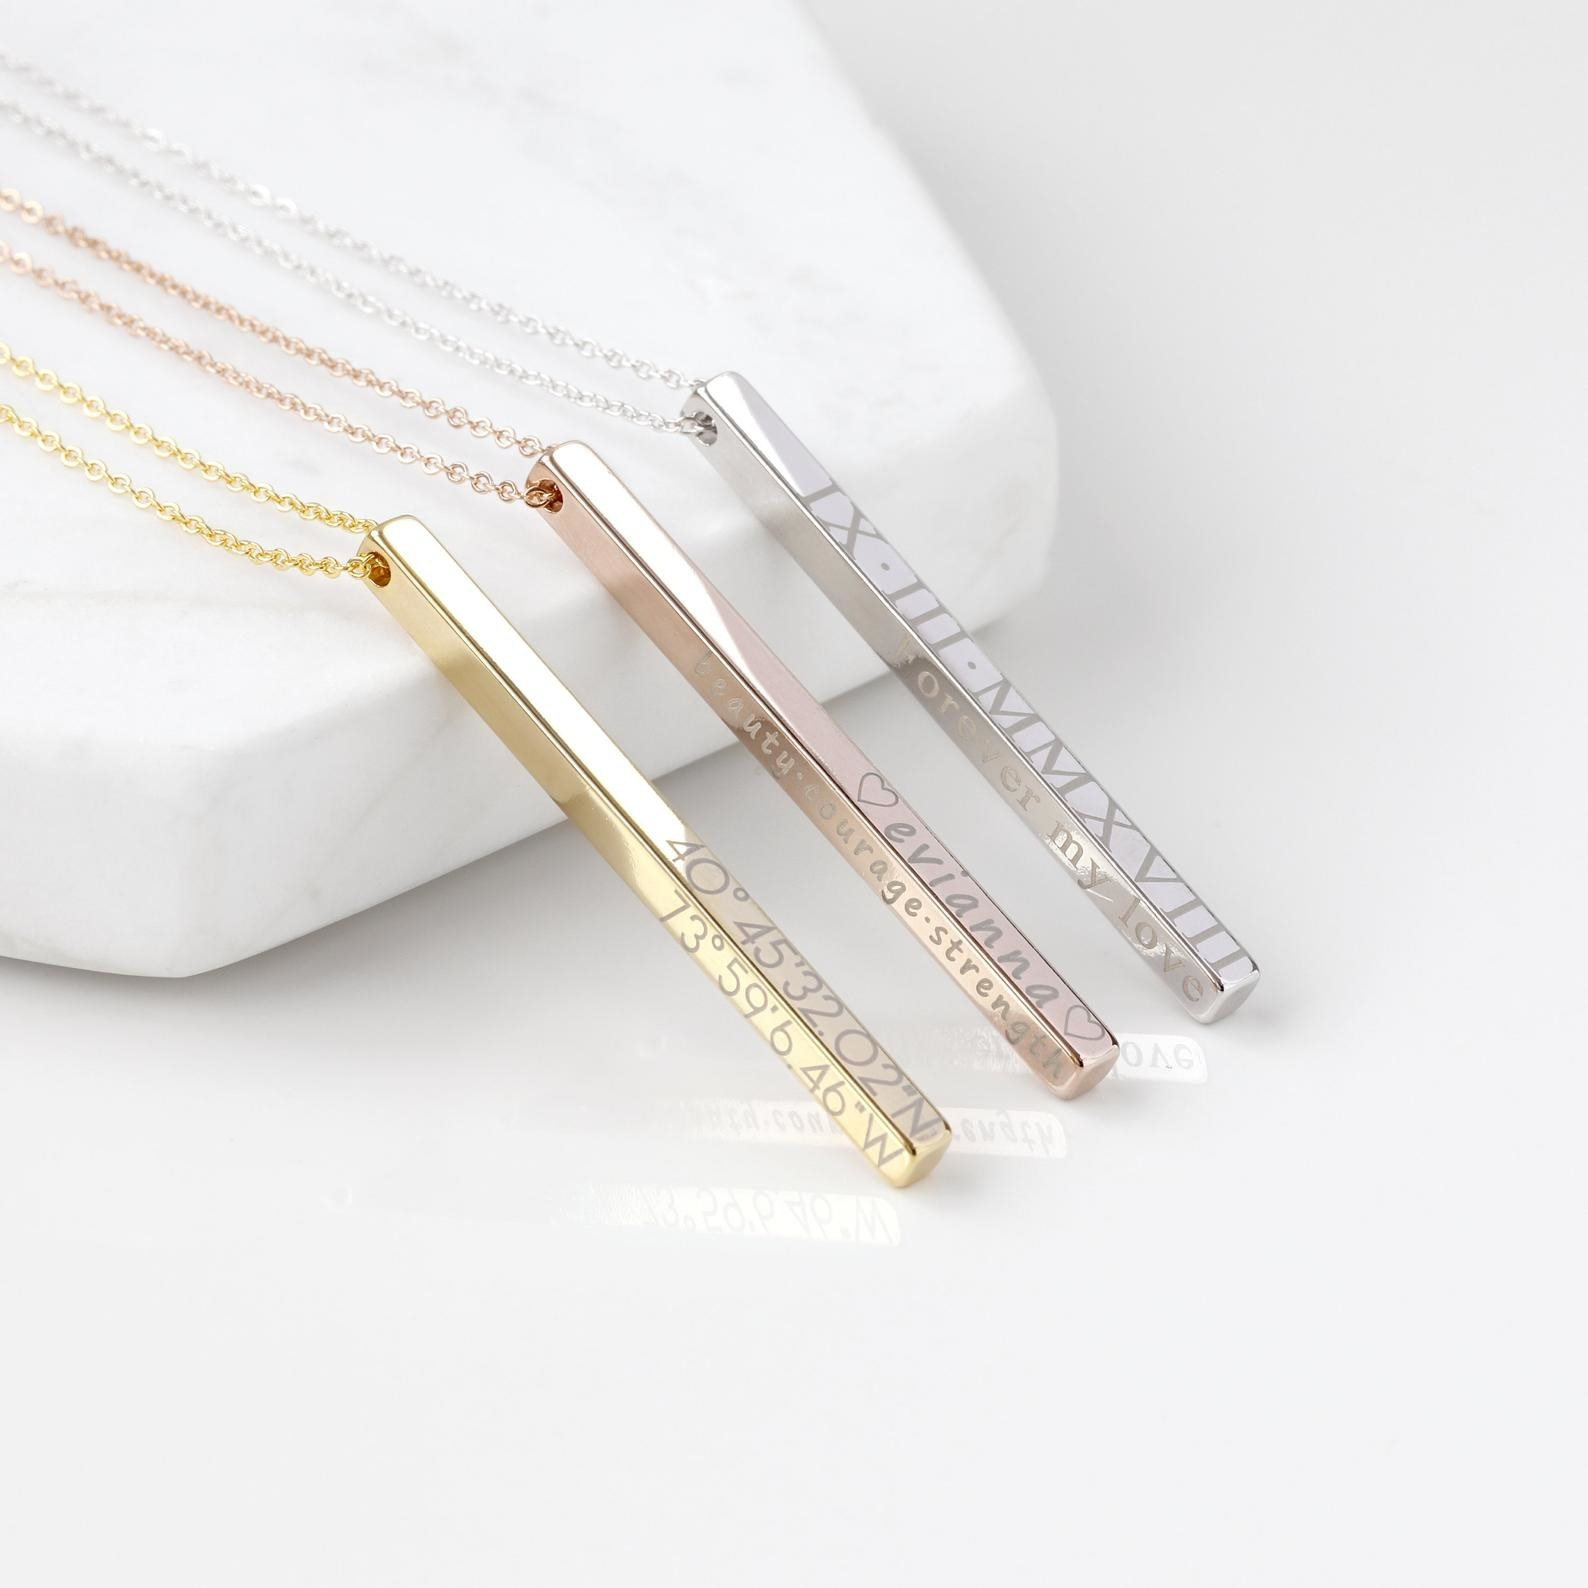 the personalized bar necklaces in gold, rose gold, and silver with custom engravings